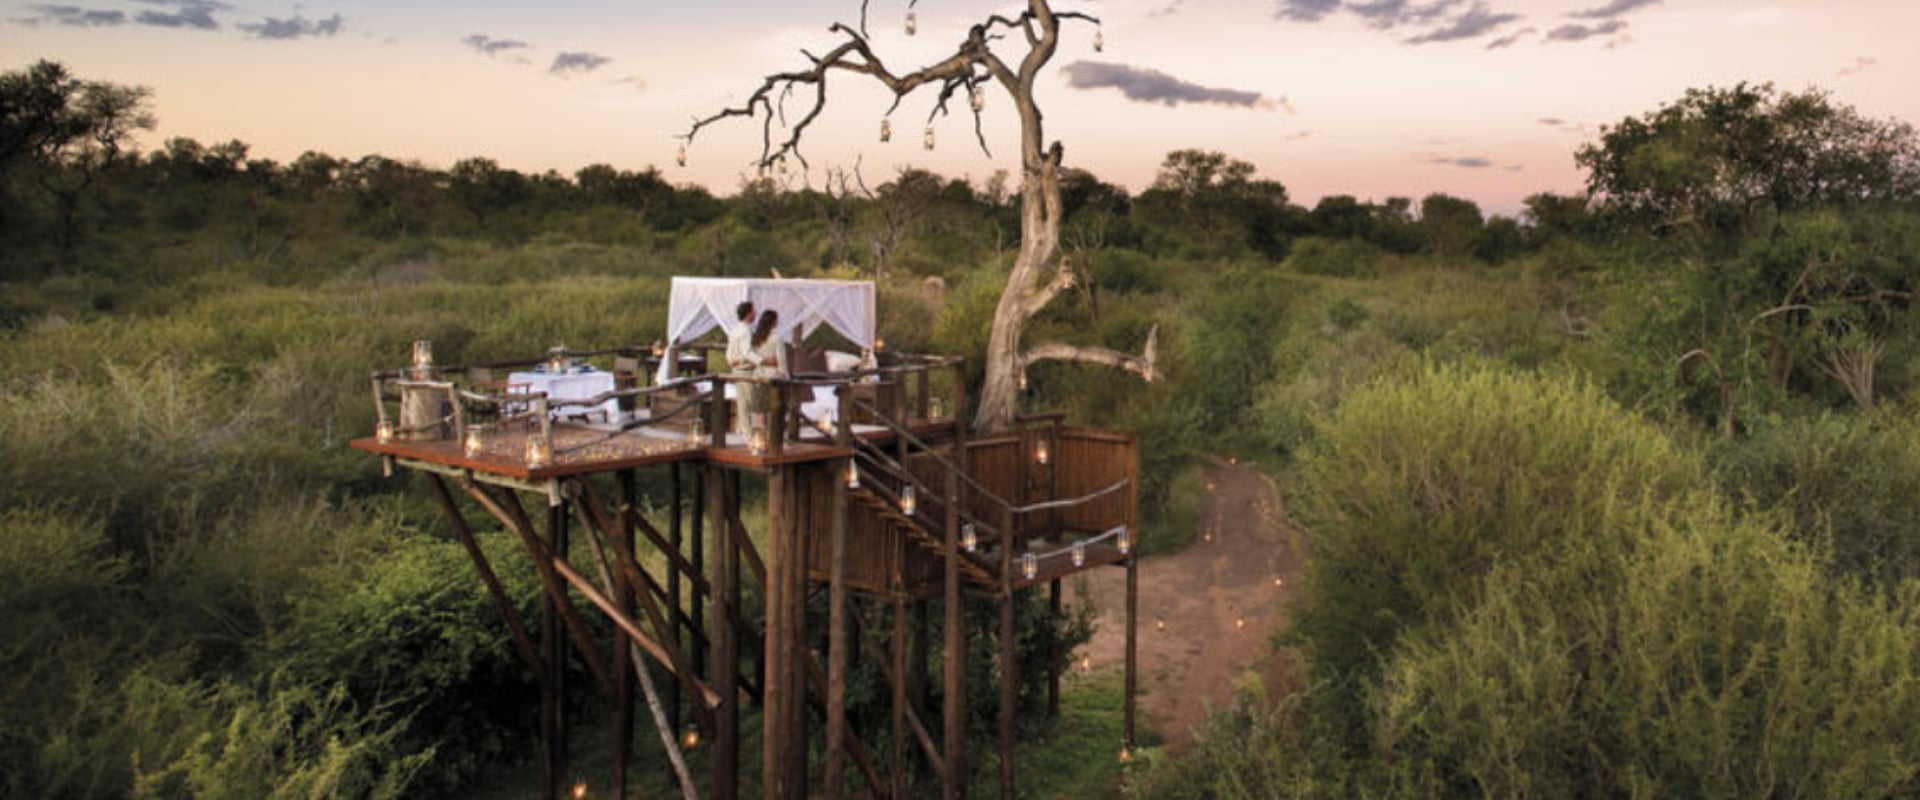 Slumber in a treehouse, under the twinkling African sky